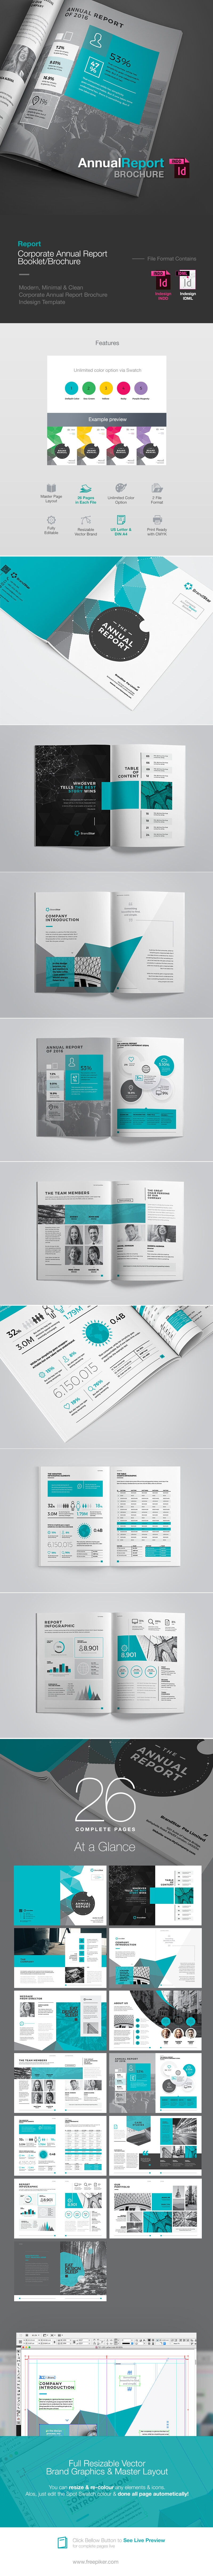 Annual Report Brochure / Booklet